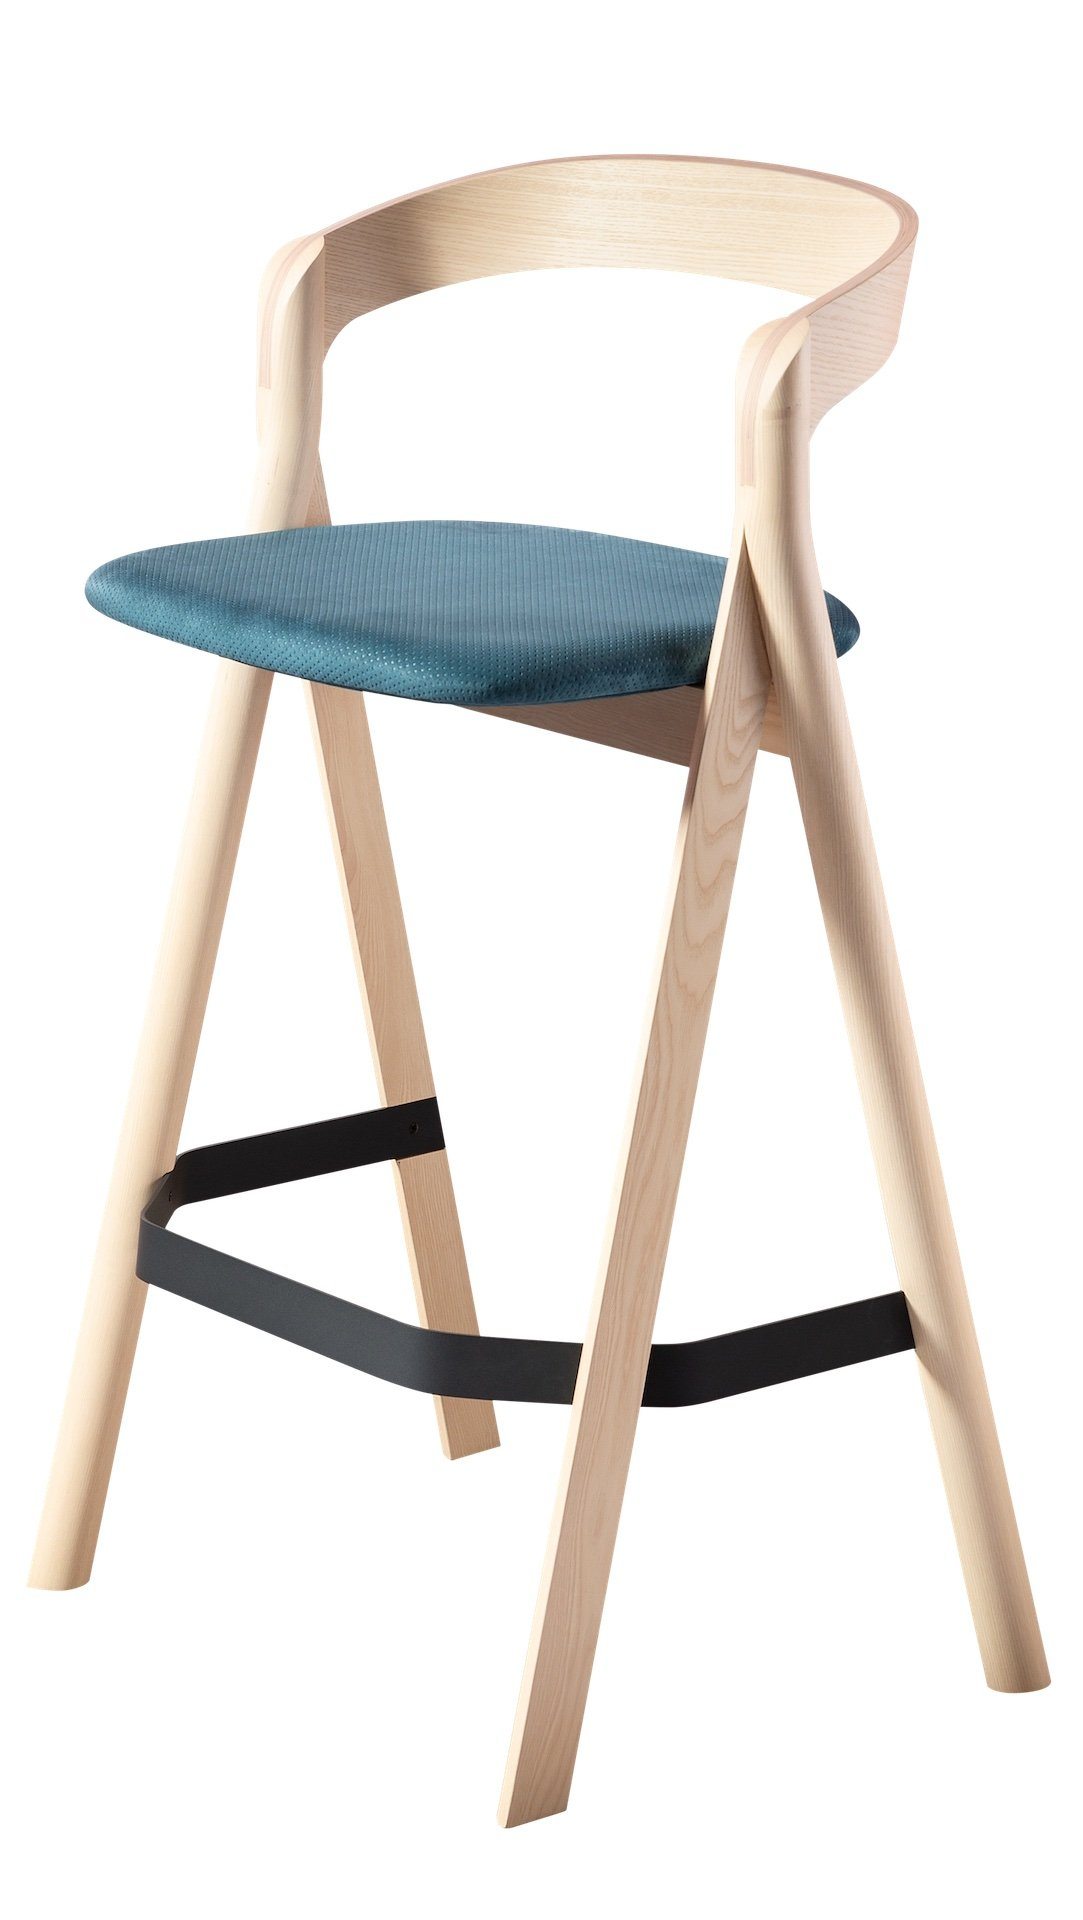 Diverge Stool from Miniforms, designed by Skrivo